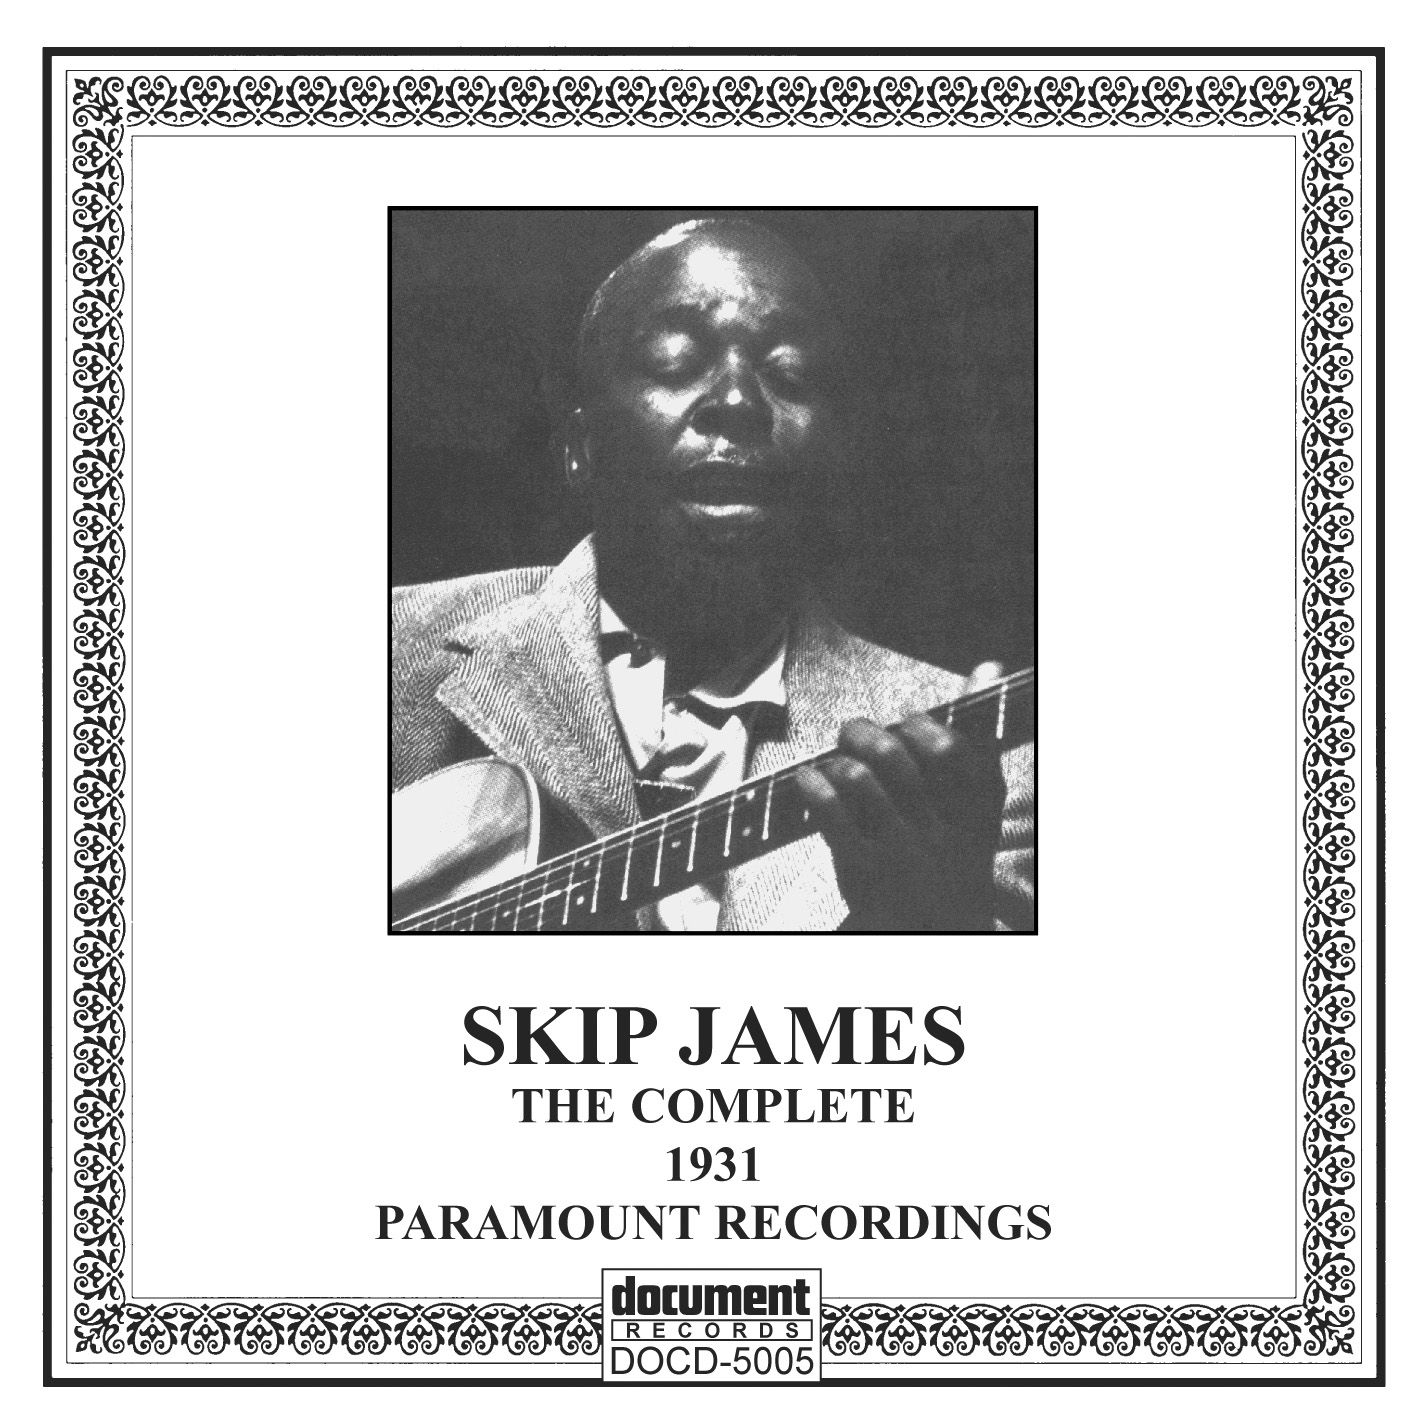 DOCD-5005 Skip James .The Complete Paramount Recordings 1931